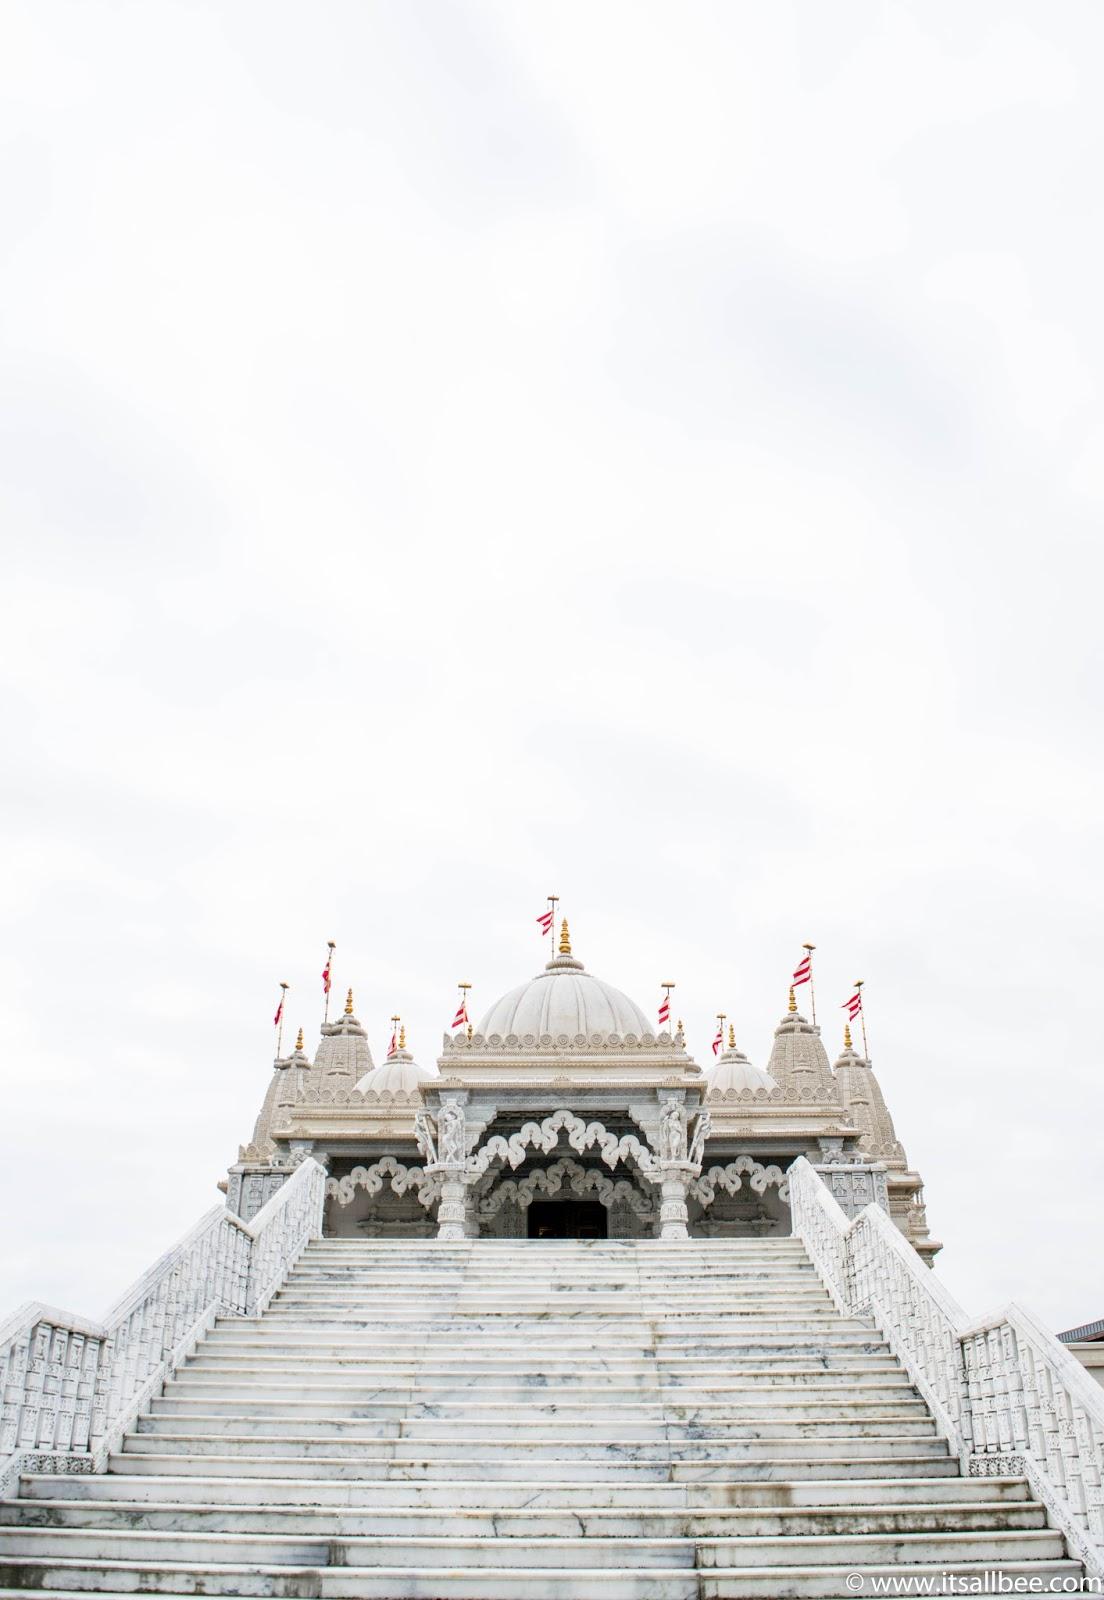 You wont believe this insanely beautiful temple is in London | Neasden temple | Baps Shri-Swaninarayan Mandir